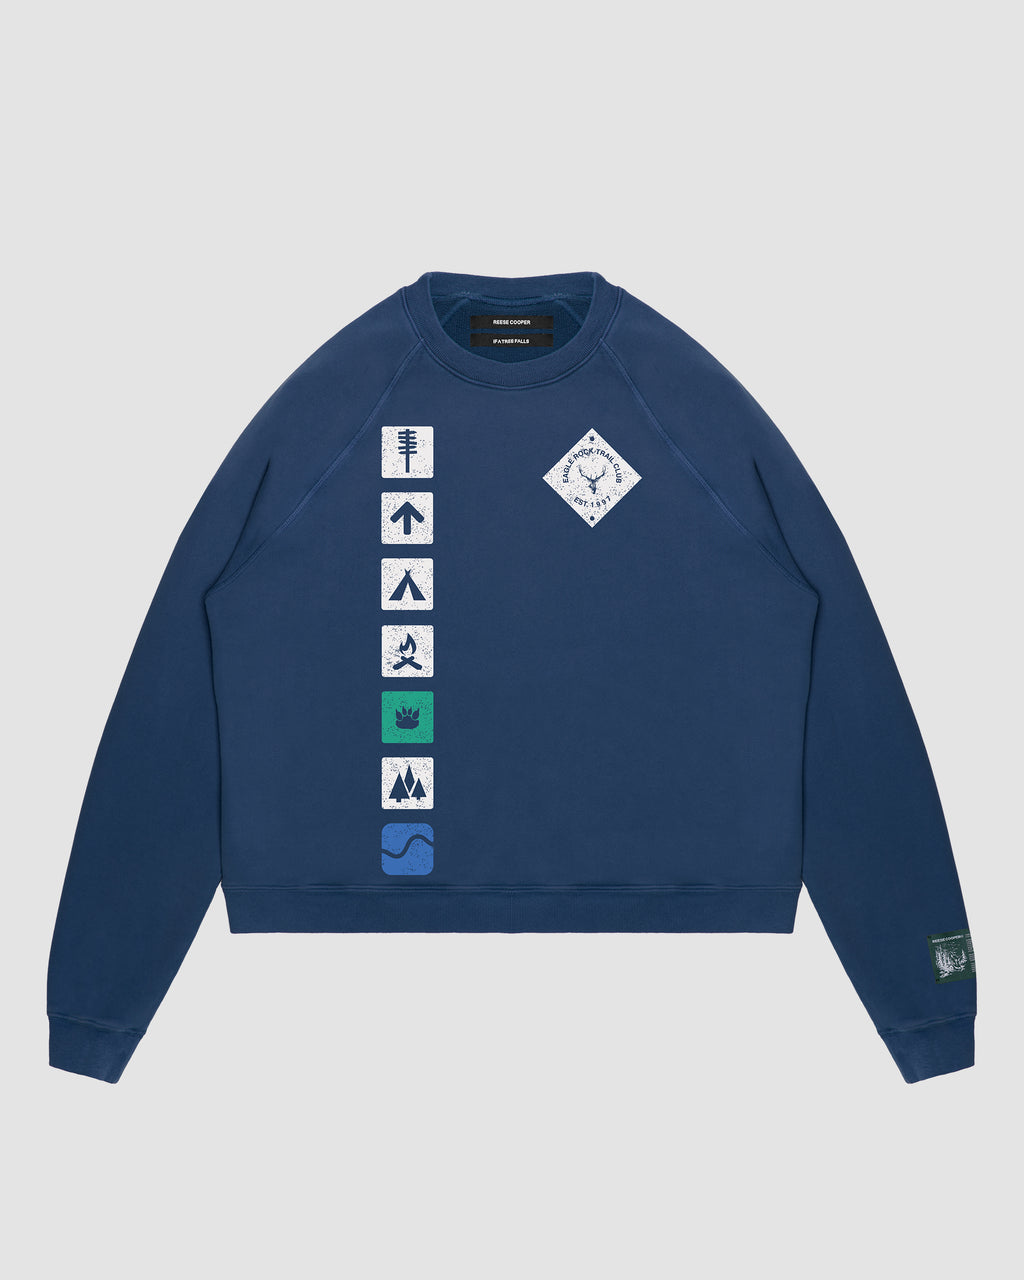 RCI Creek Walking Trail Crewneck Sweatshirt in Navy